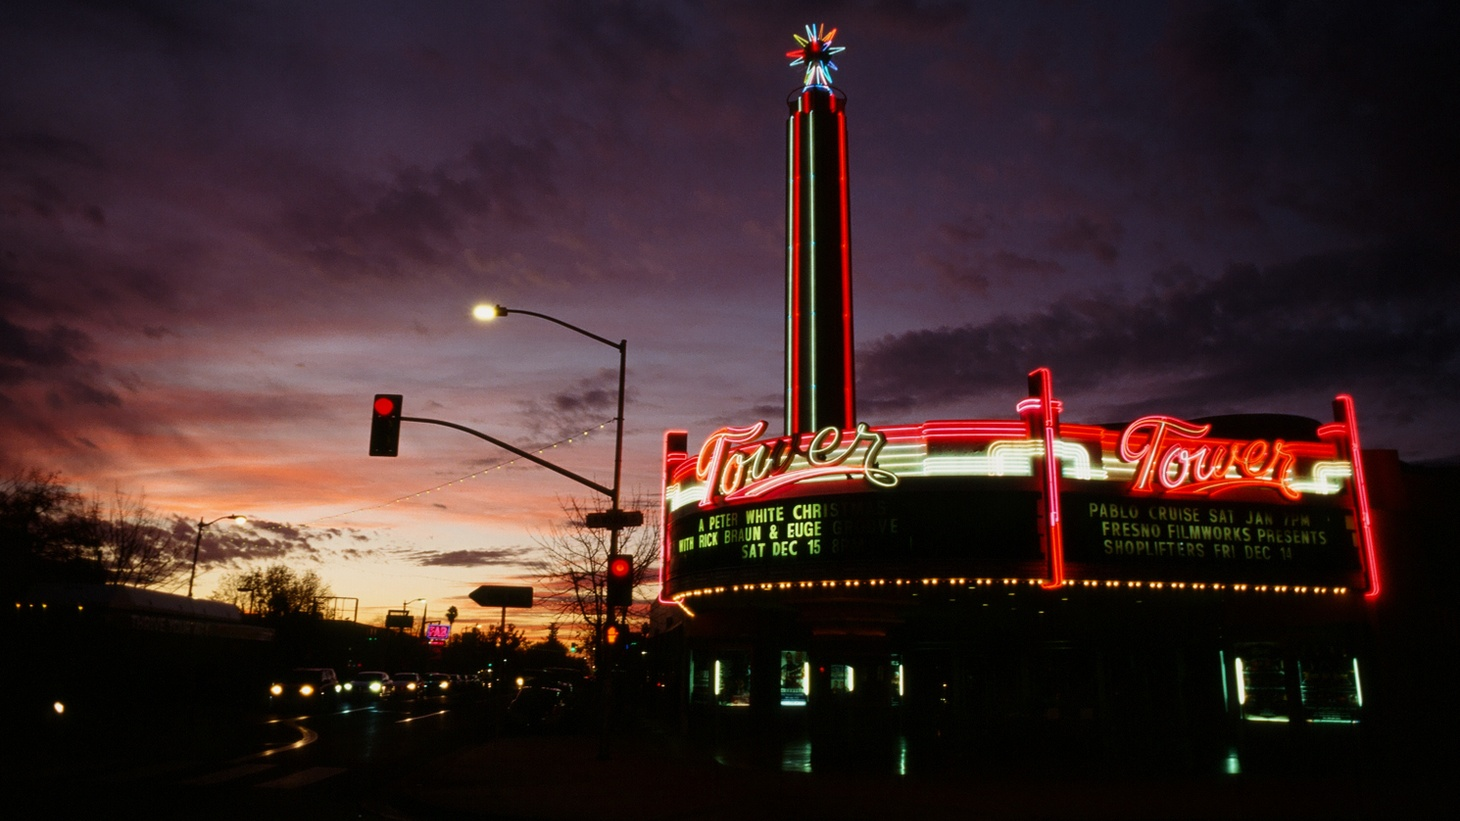 """Columnist Joe Matthews writes that historic theaters, like the Tower in Fresno, can be saved in the Netflix era if they're allowed to be used and managed by churches. """"The Tower is a 1939 Streamline Moderne gem anchoring an artsy neighborhood of Fresno. But like so many of California's signature old theaters, it can't support itself,"""" Mathews says."""